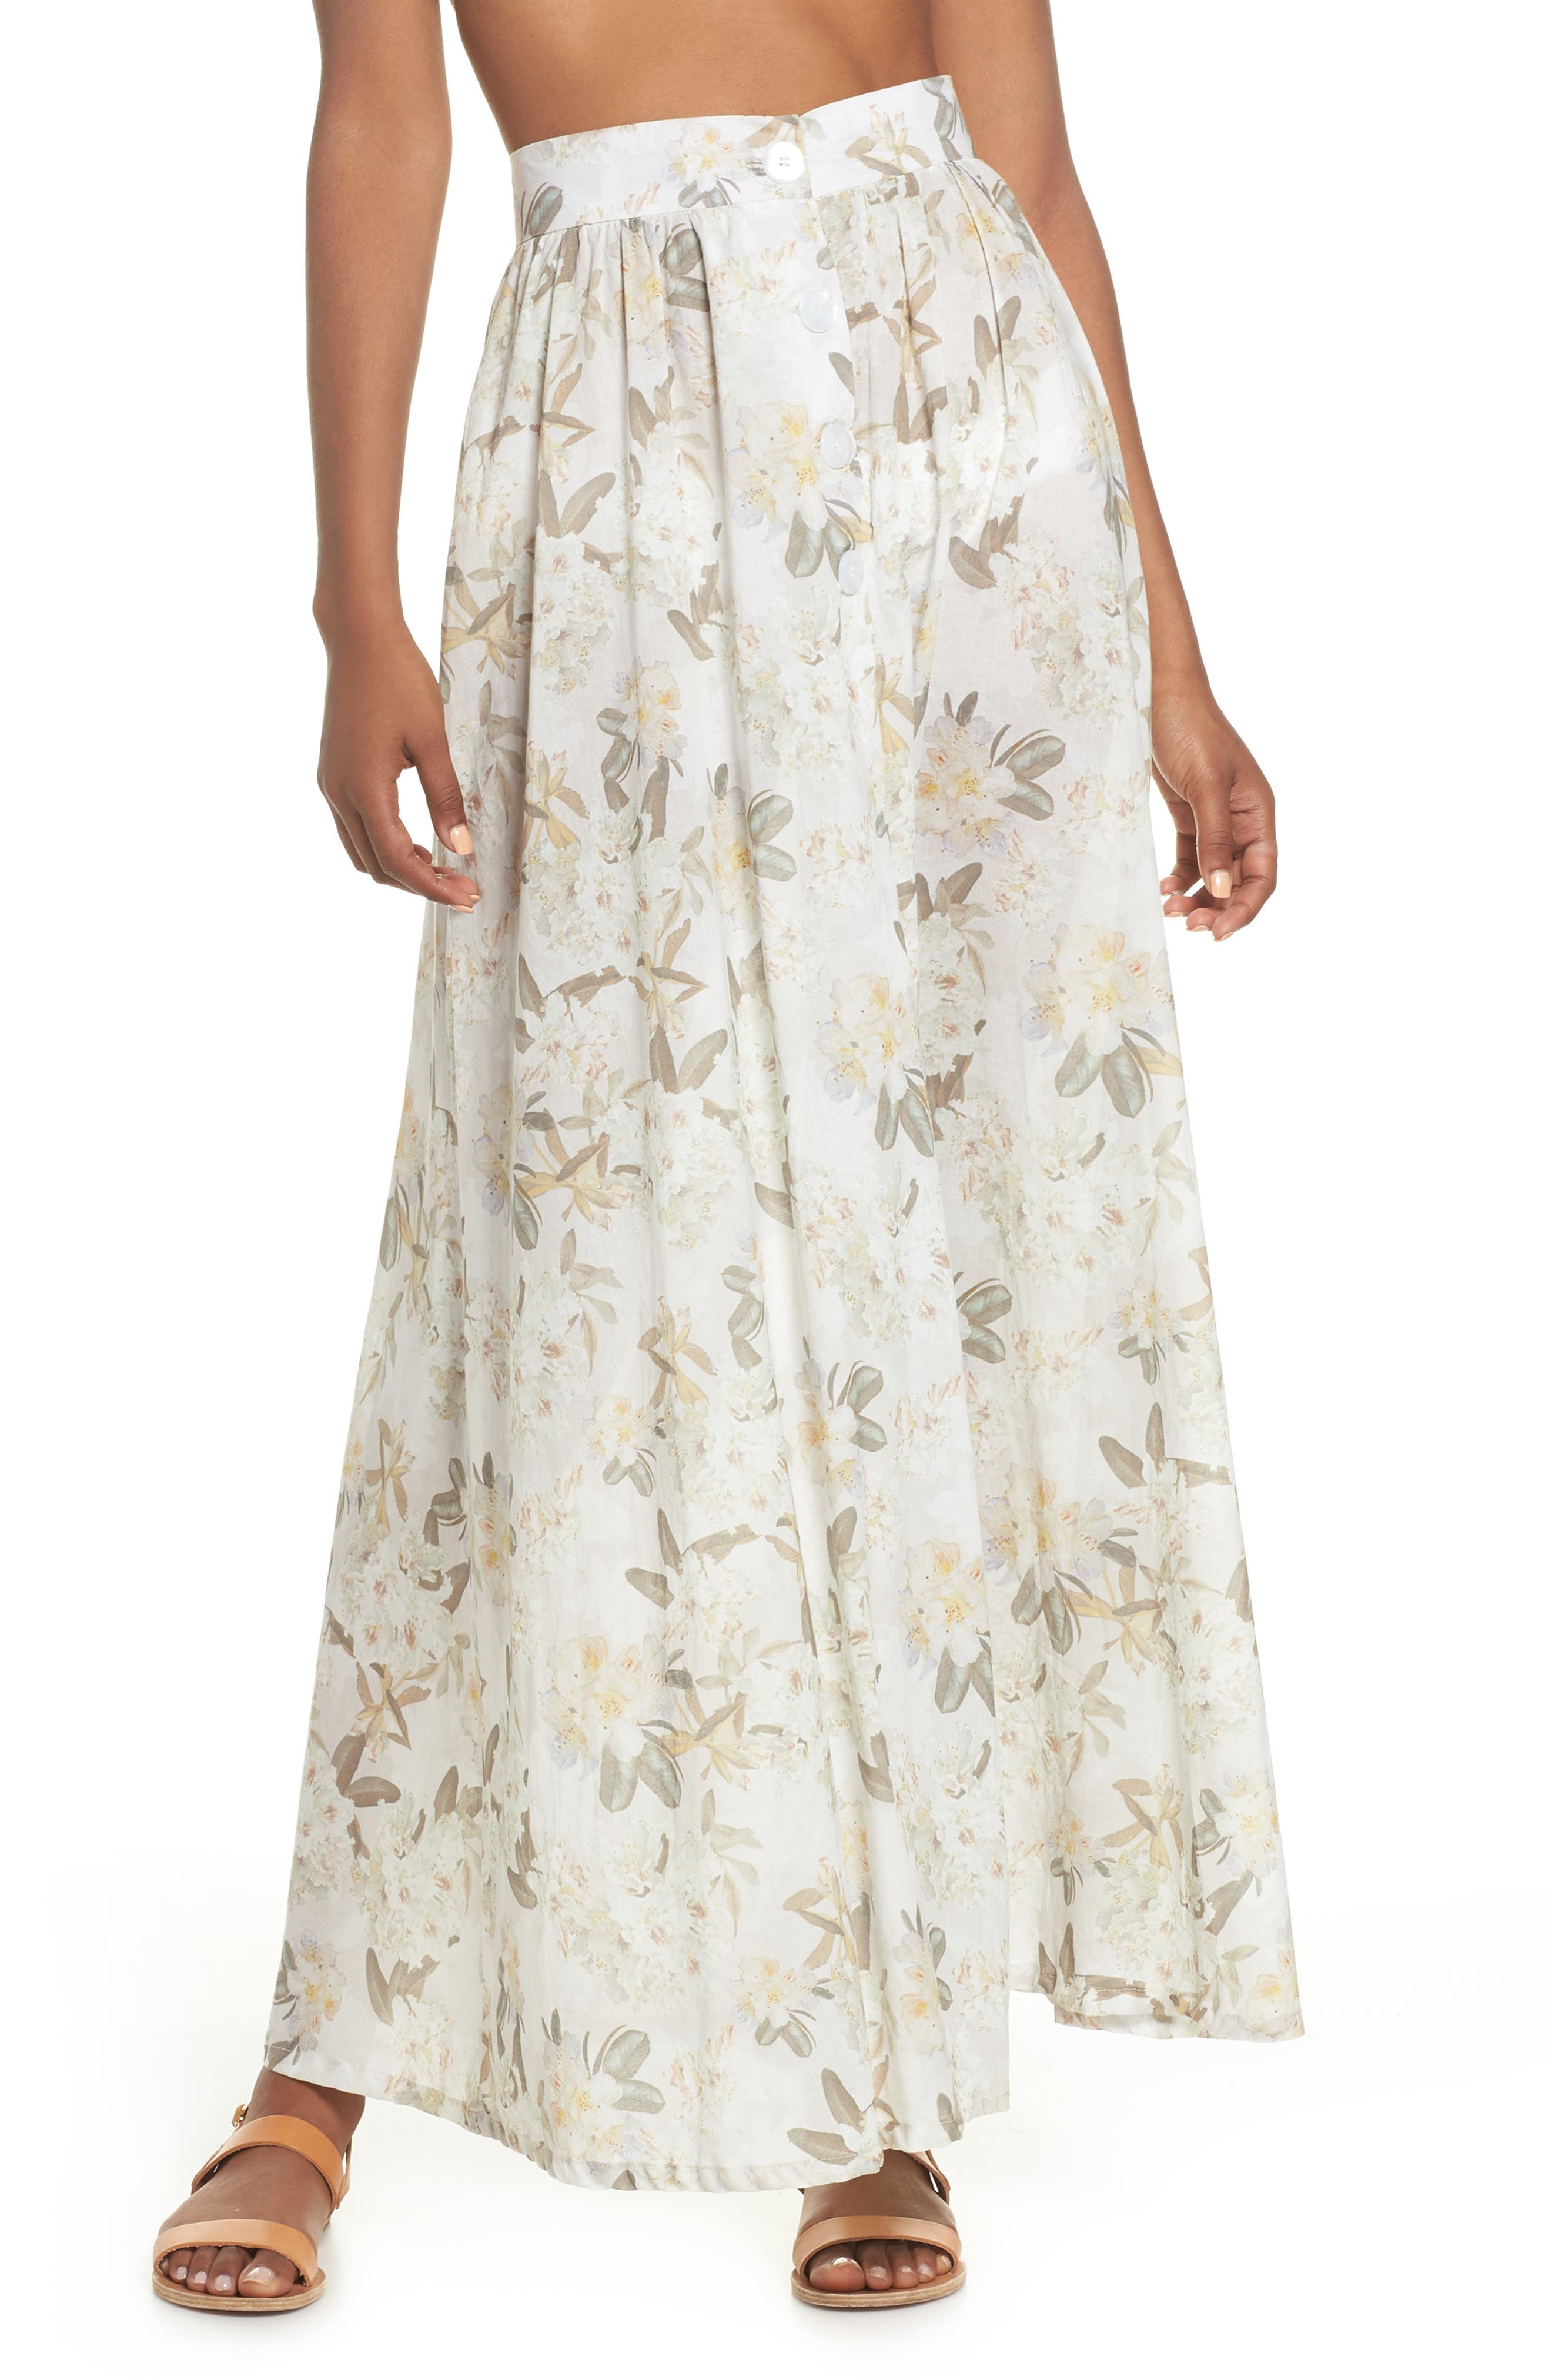 Edith Cover-Up Maxi Skirt,                             Main thumbnail 1, color,                             Ete Floral White